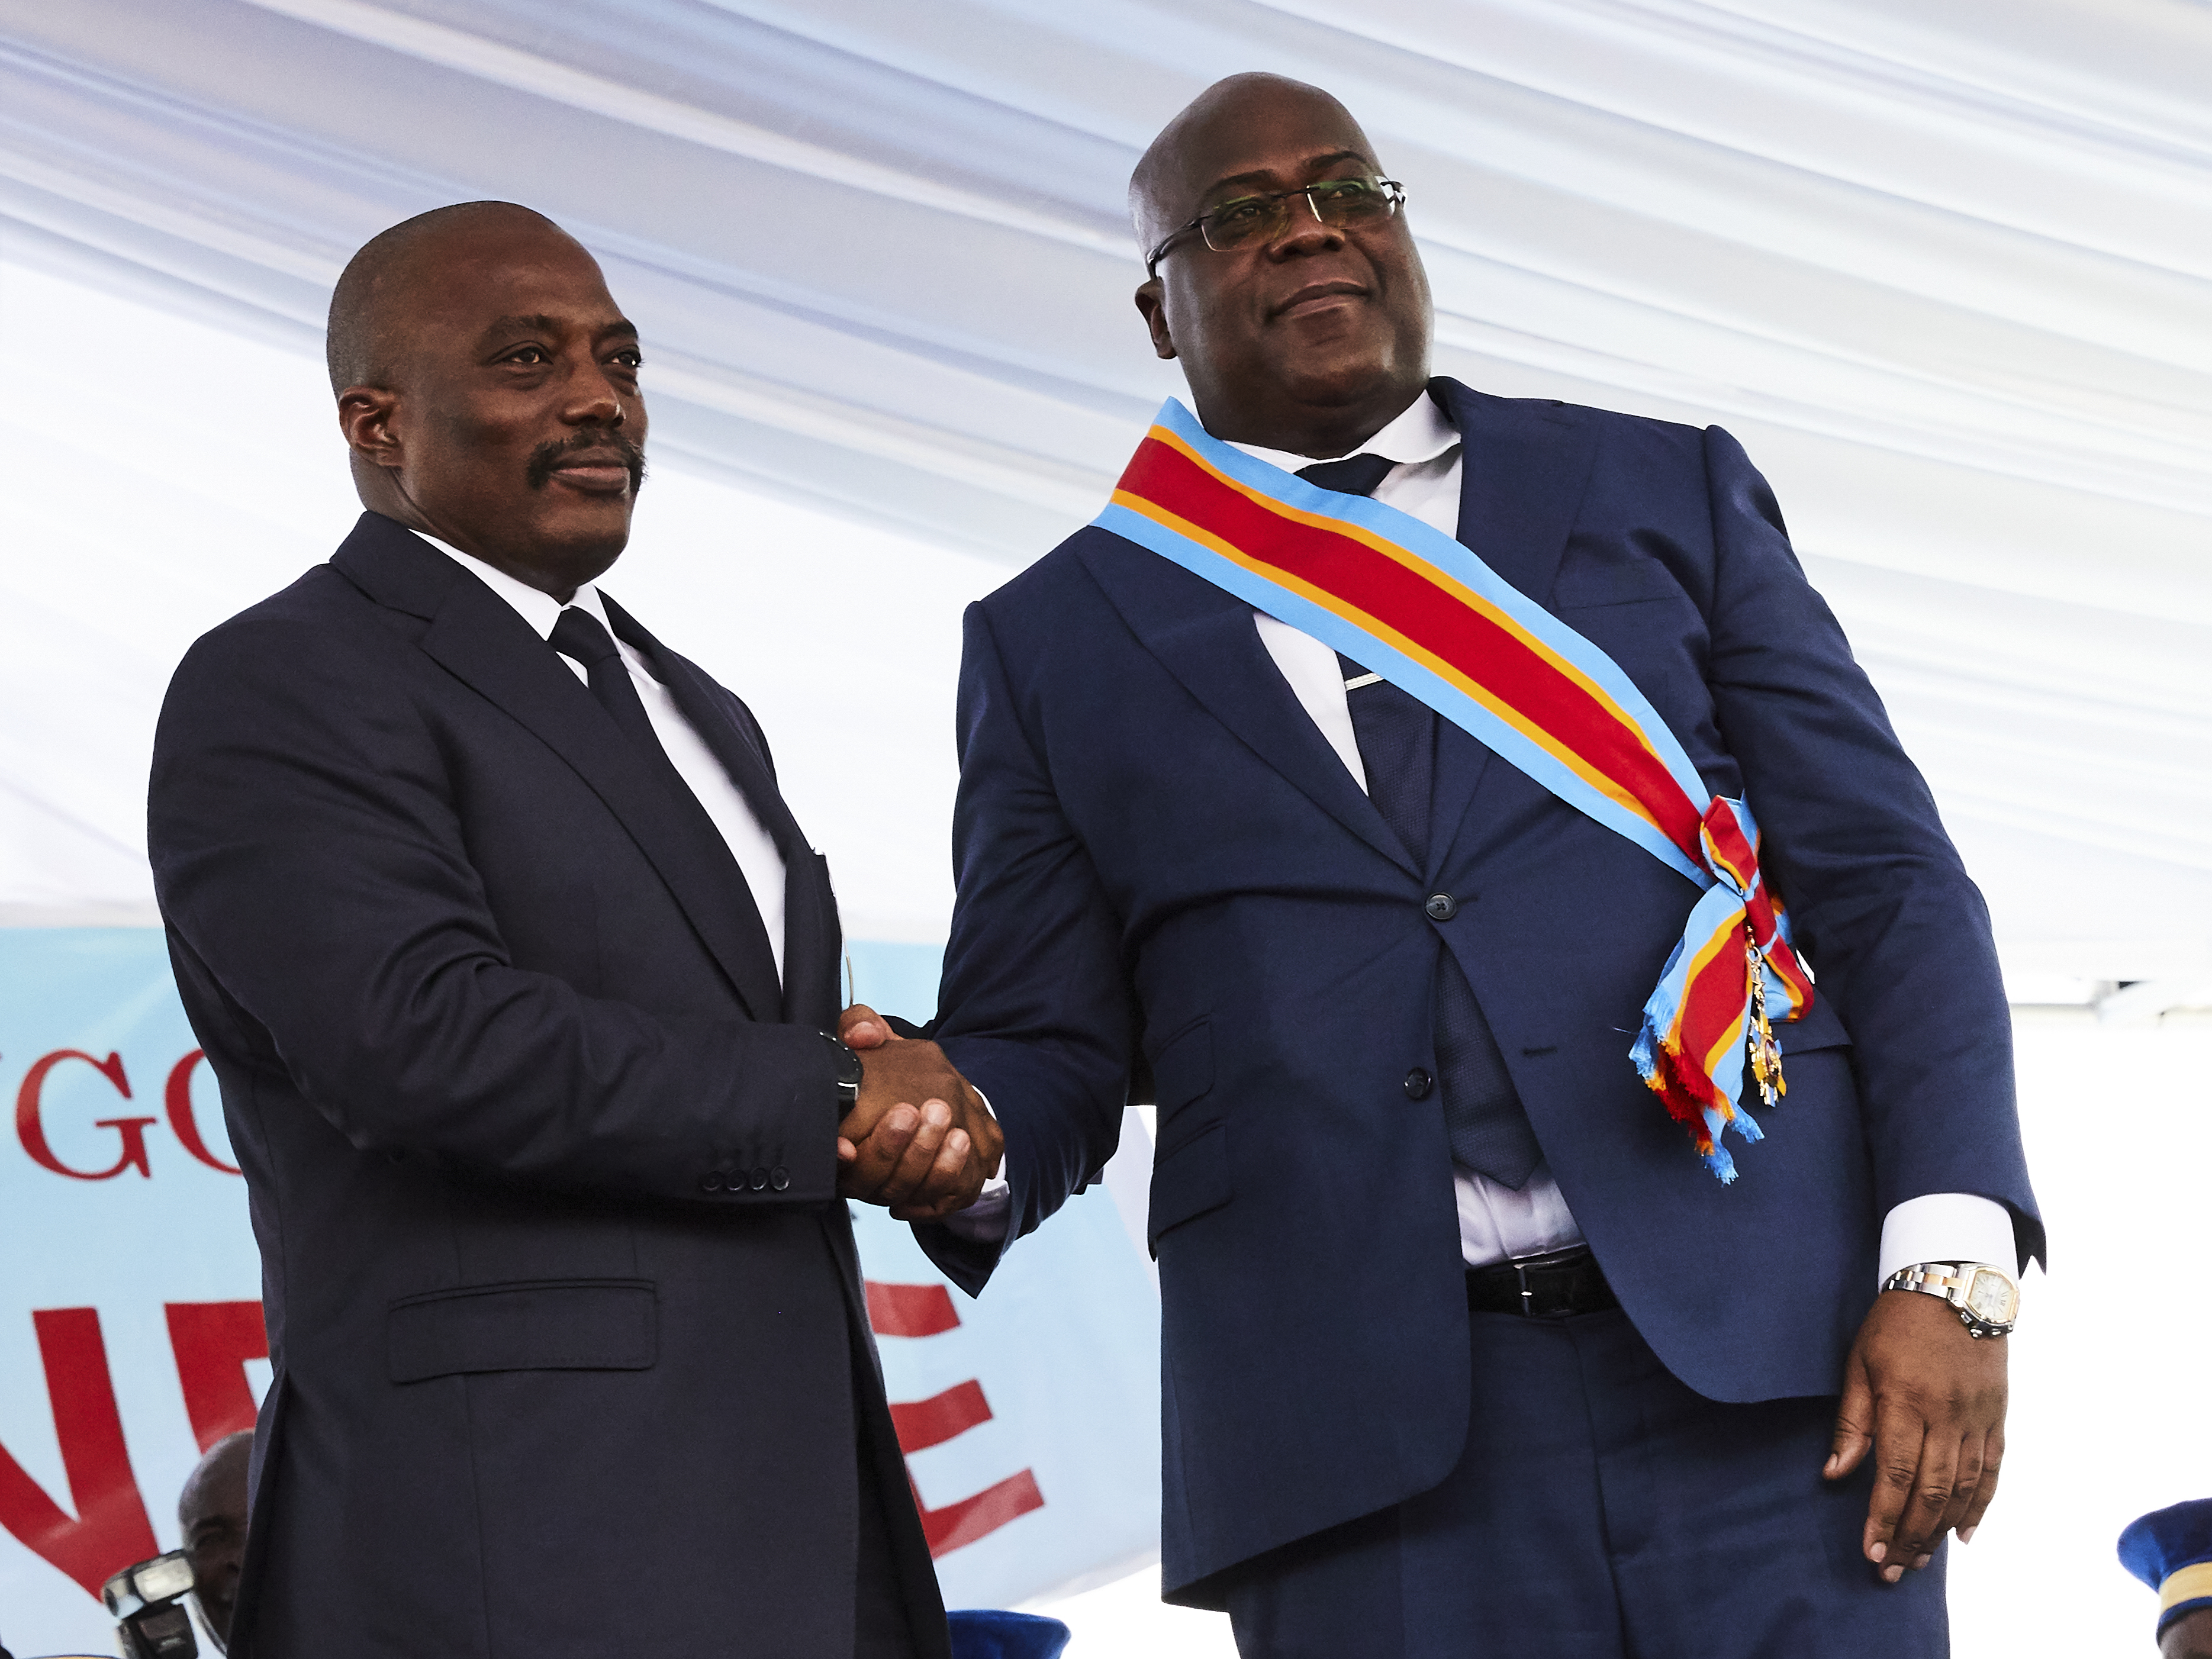 Collaboration or Coalition? Tshisekedi's Tough Choices as Leader of the DRC